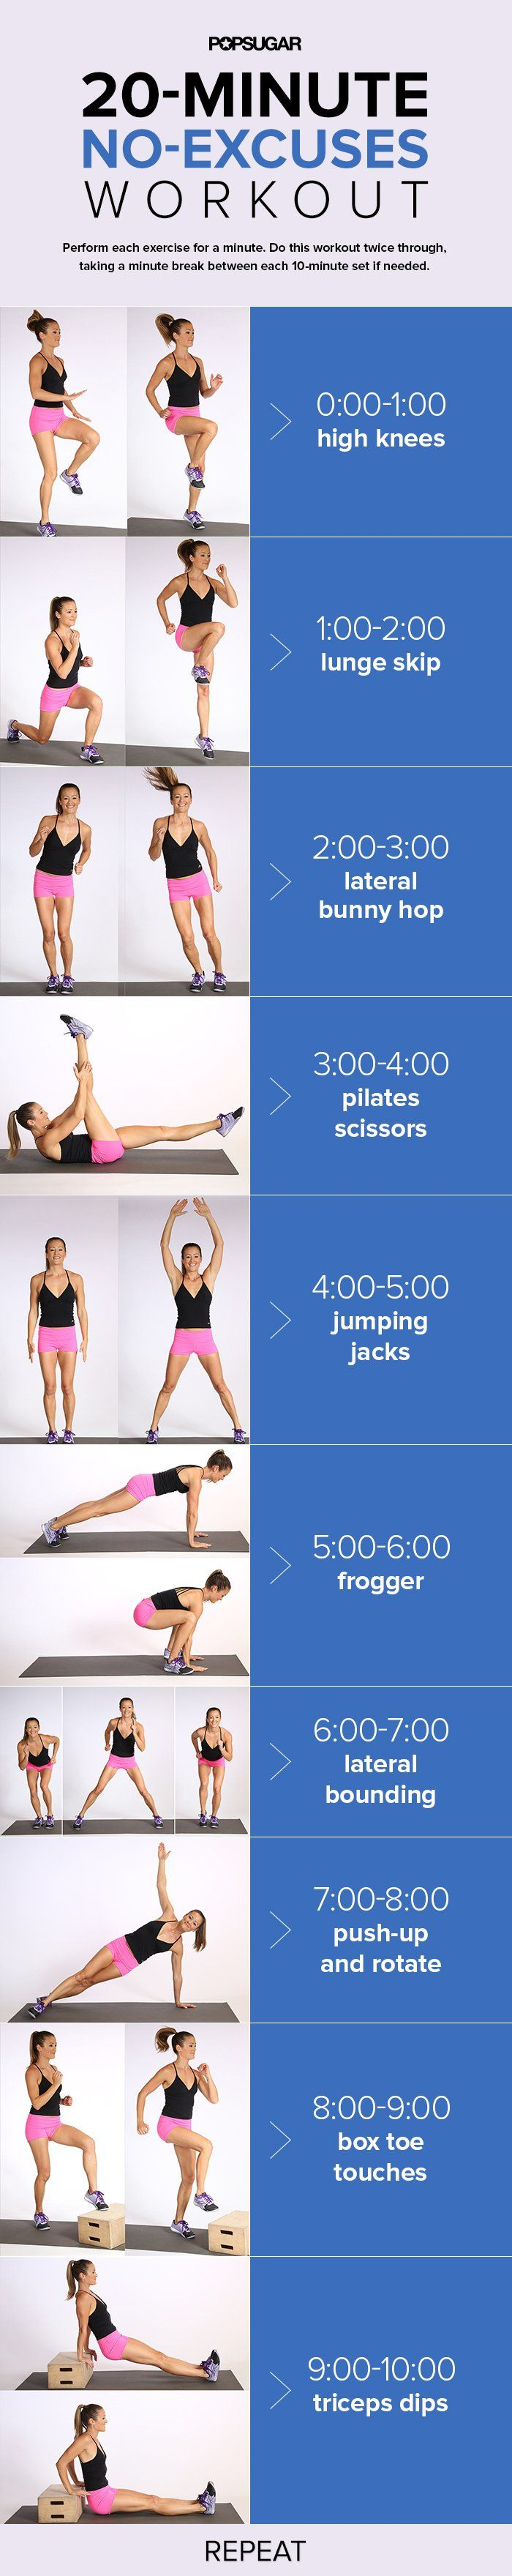 Build Muscle Burn Calories Printable Cardio And Strength Workout